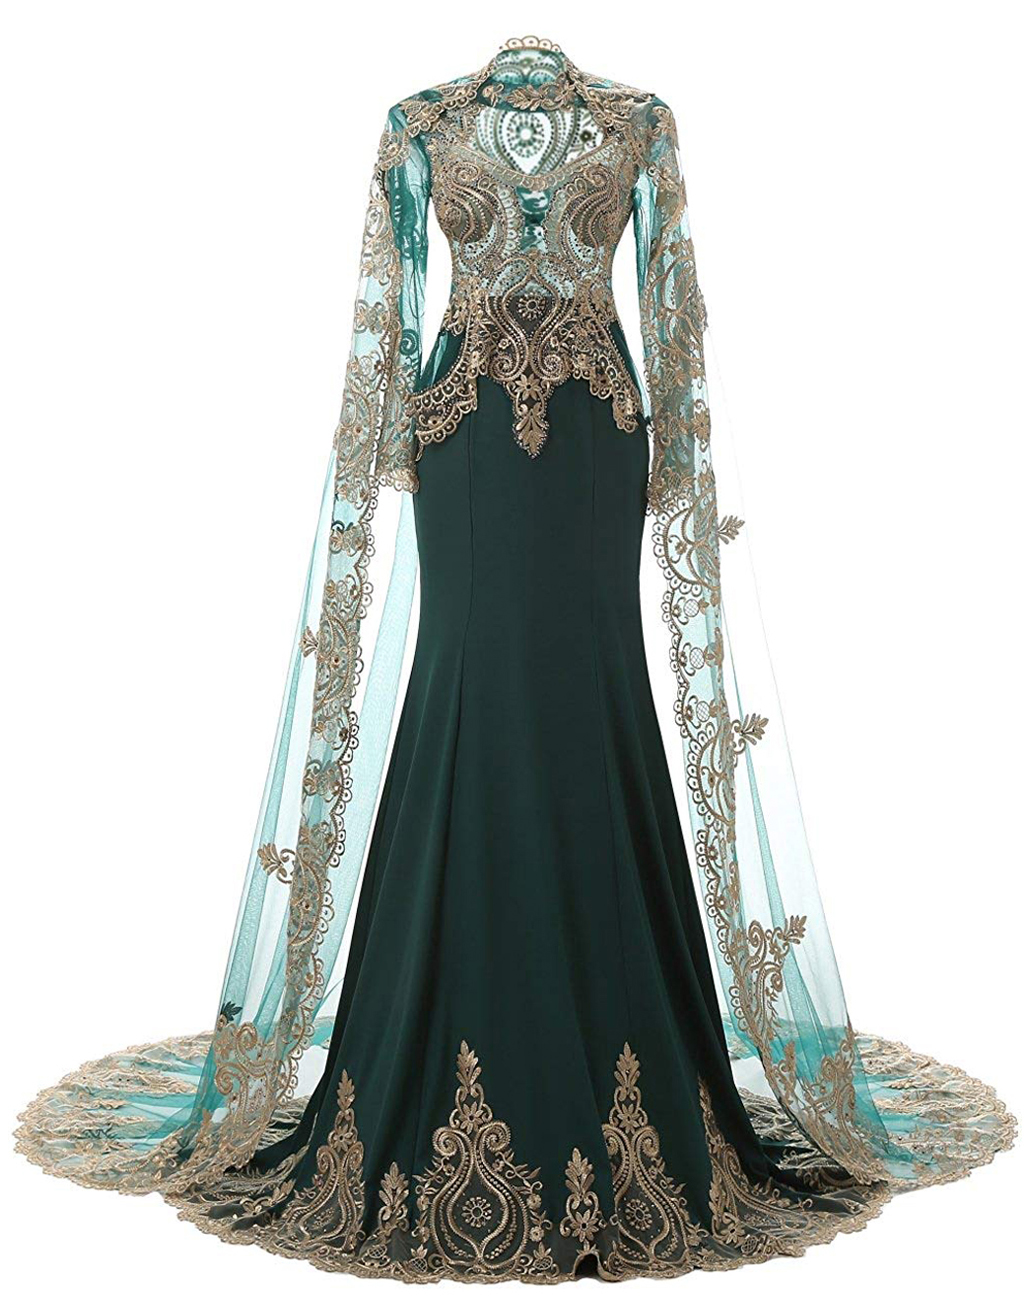 Real Photo High Neck Rhinestone Queen Mermaid Prom Dress Elegant Long Sleeve Lace Evening Dresses With Shawl